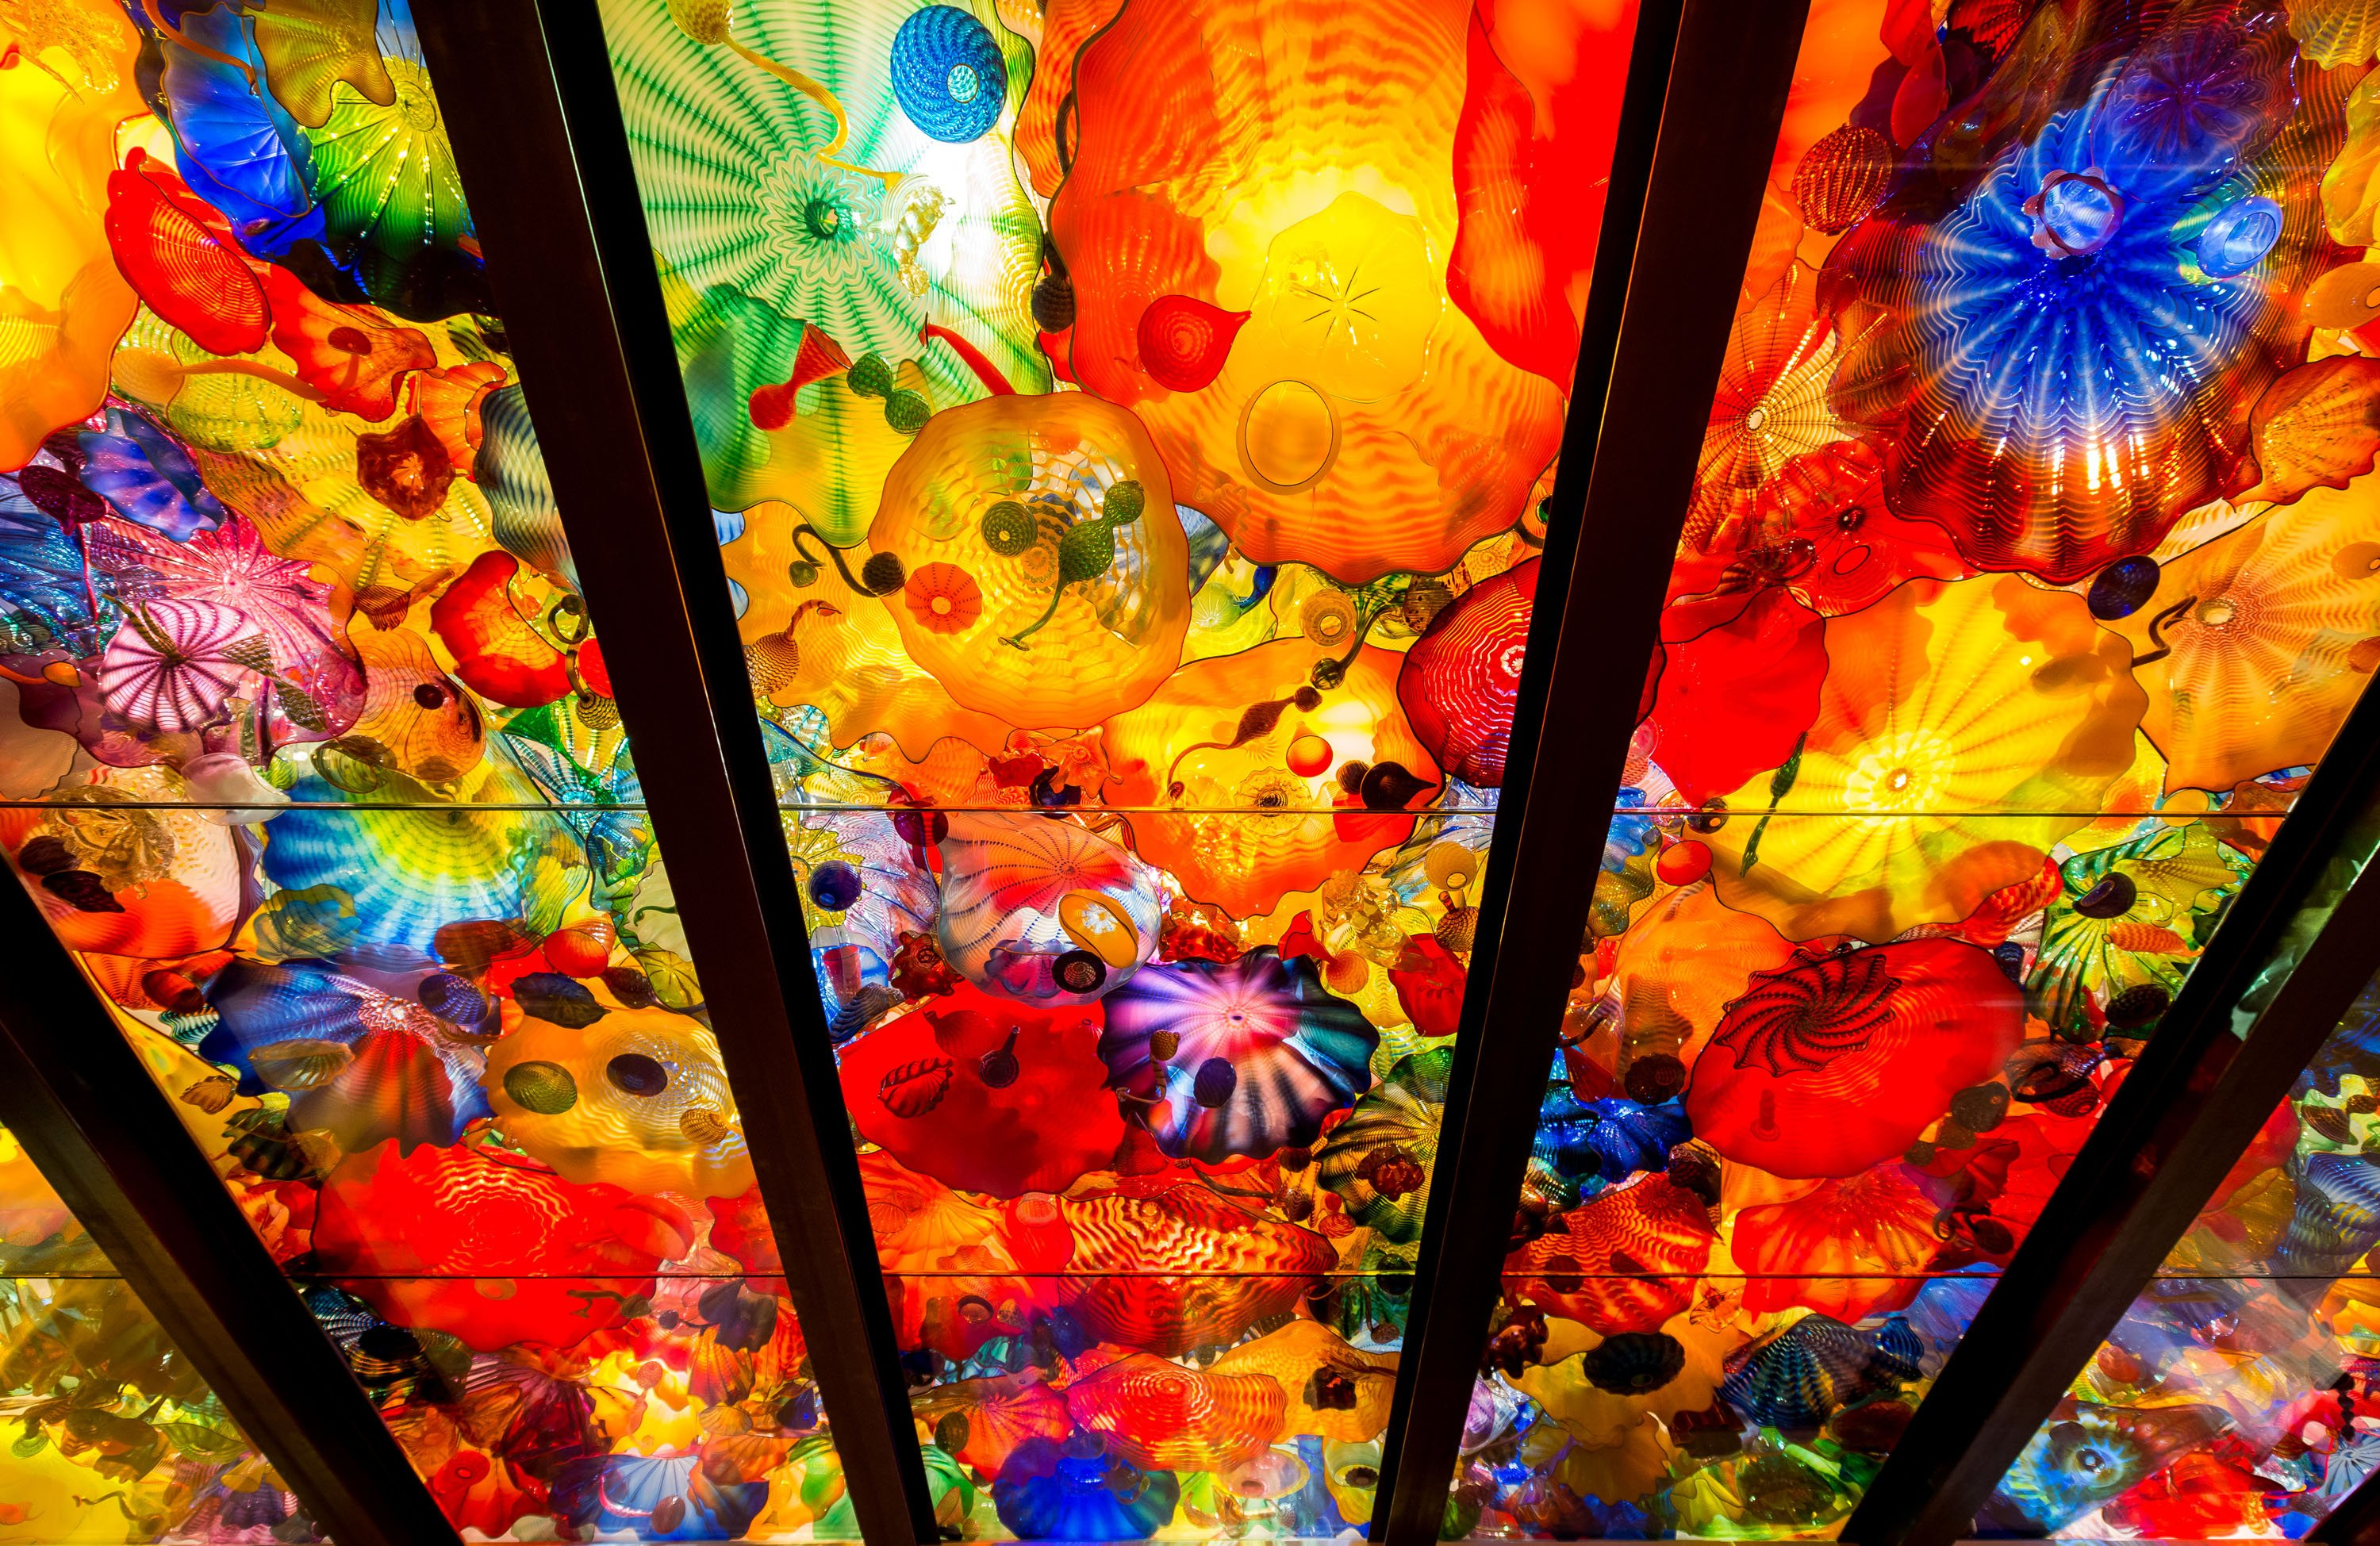 The Wonderful Art of Dale Chihuly | Mike Heller ...